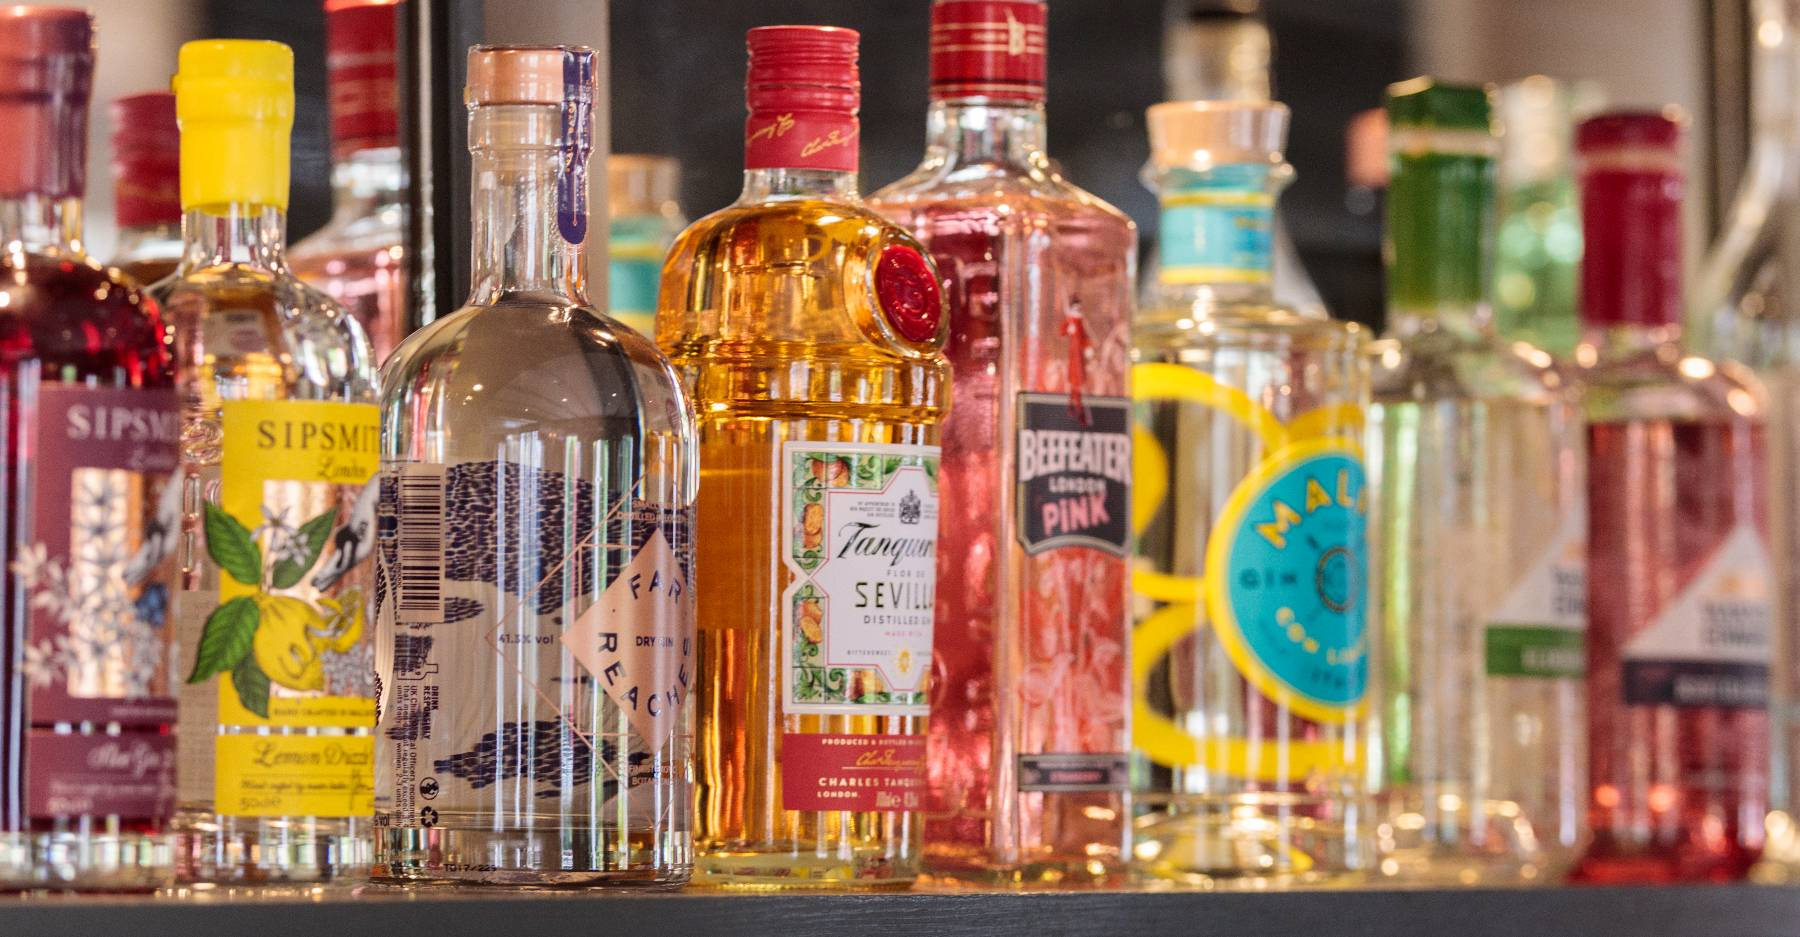 Spirits including a range of gins